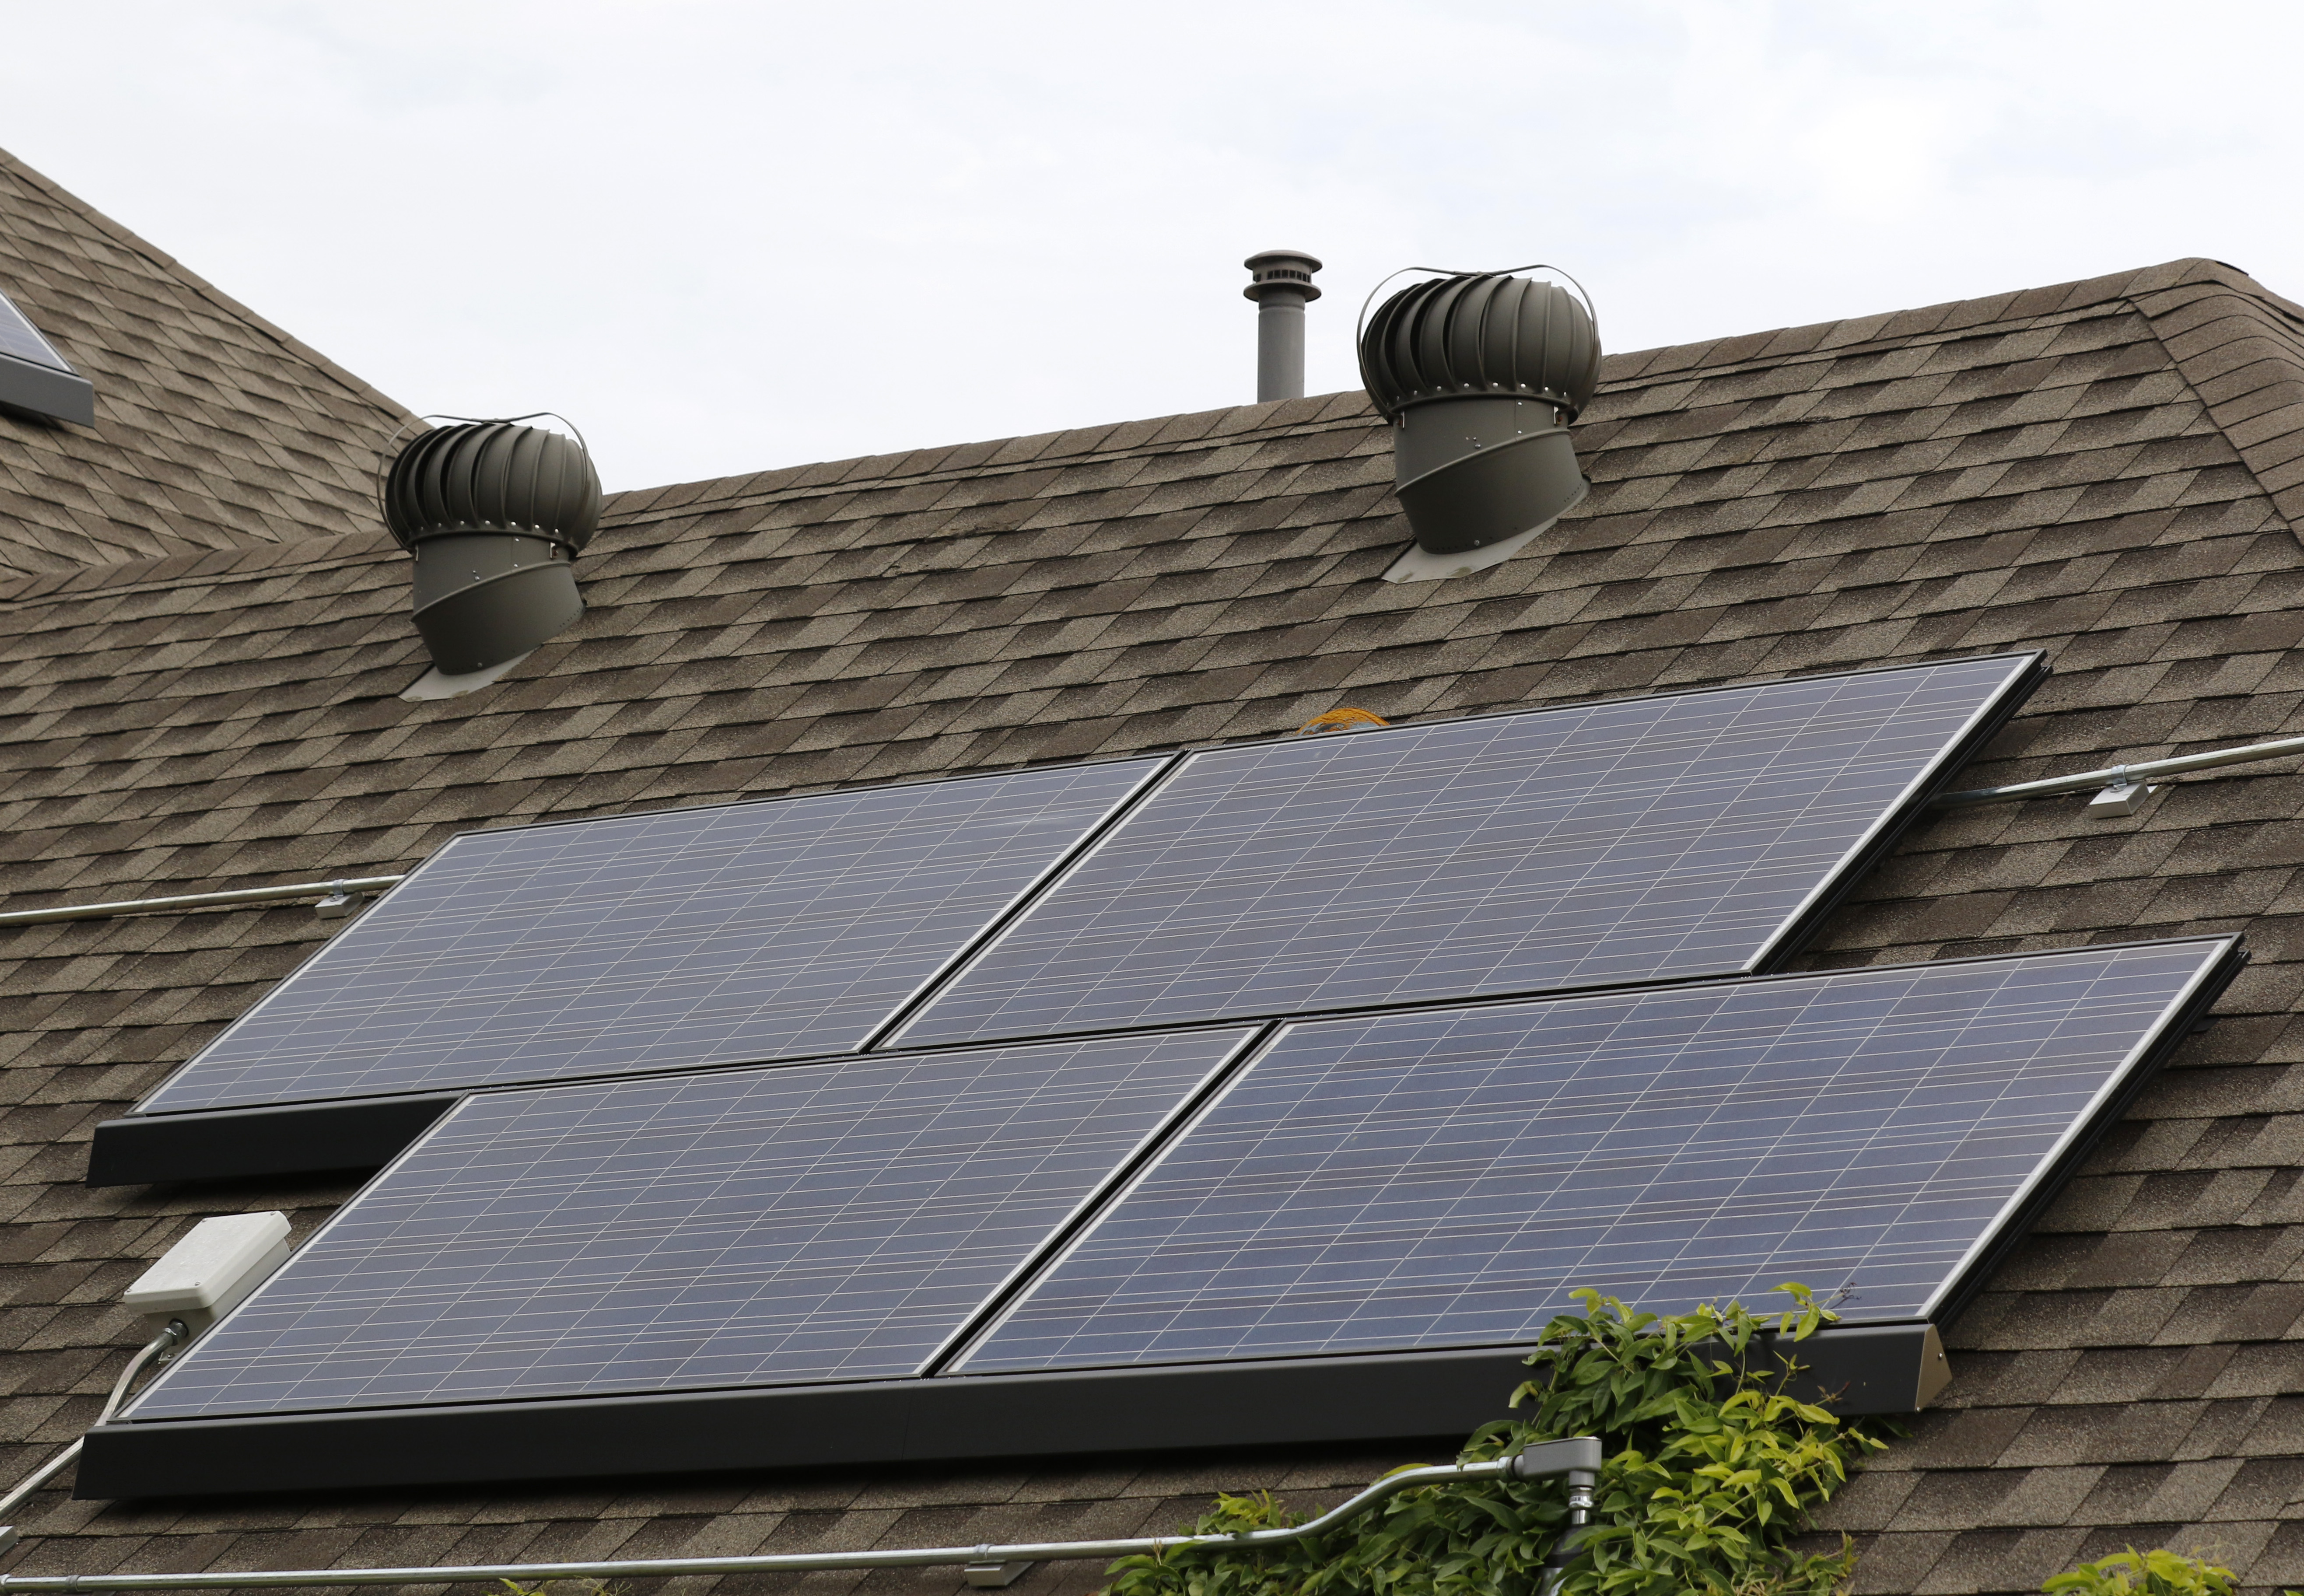 The New Oncor Is Going After A Target Texas Homeowners With Solar Panels Business Dallas News